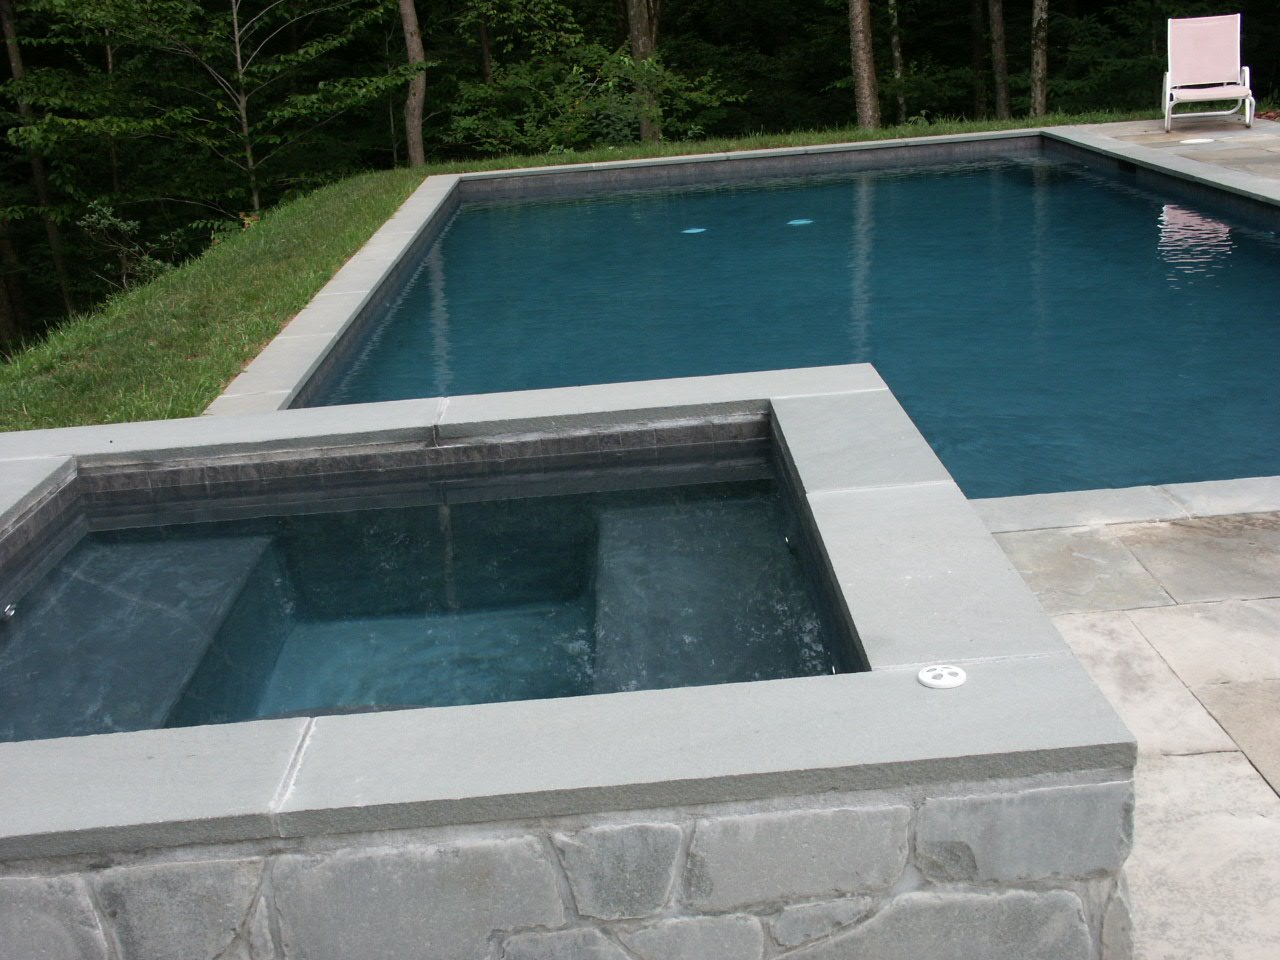 pool pictures 518